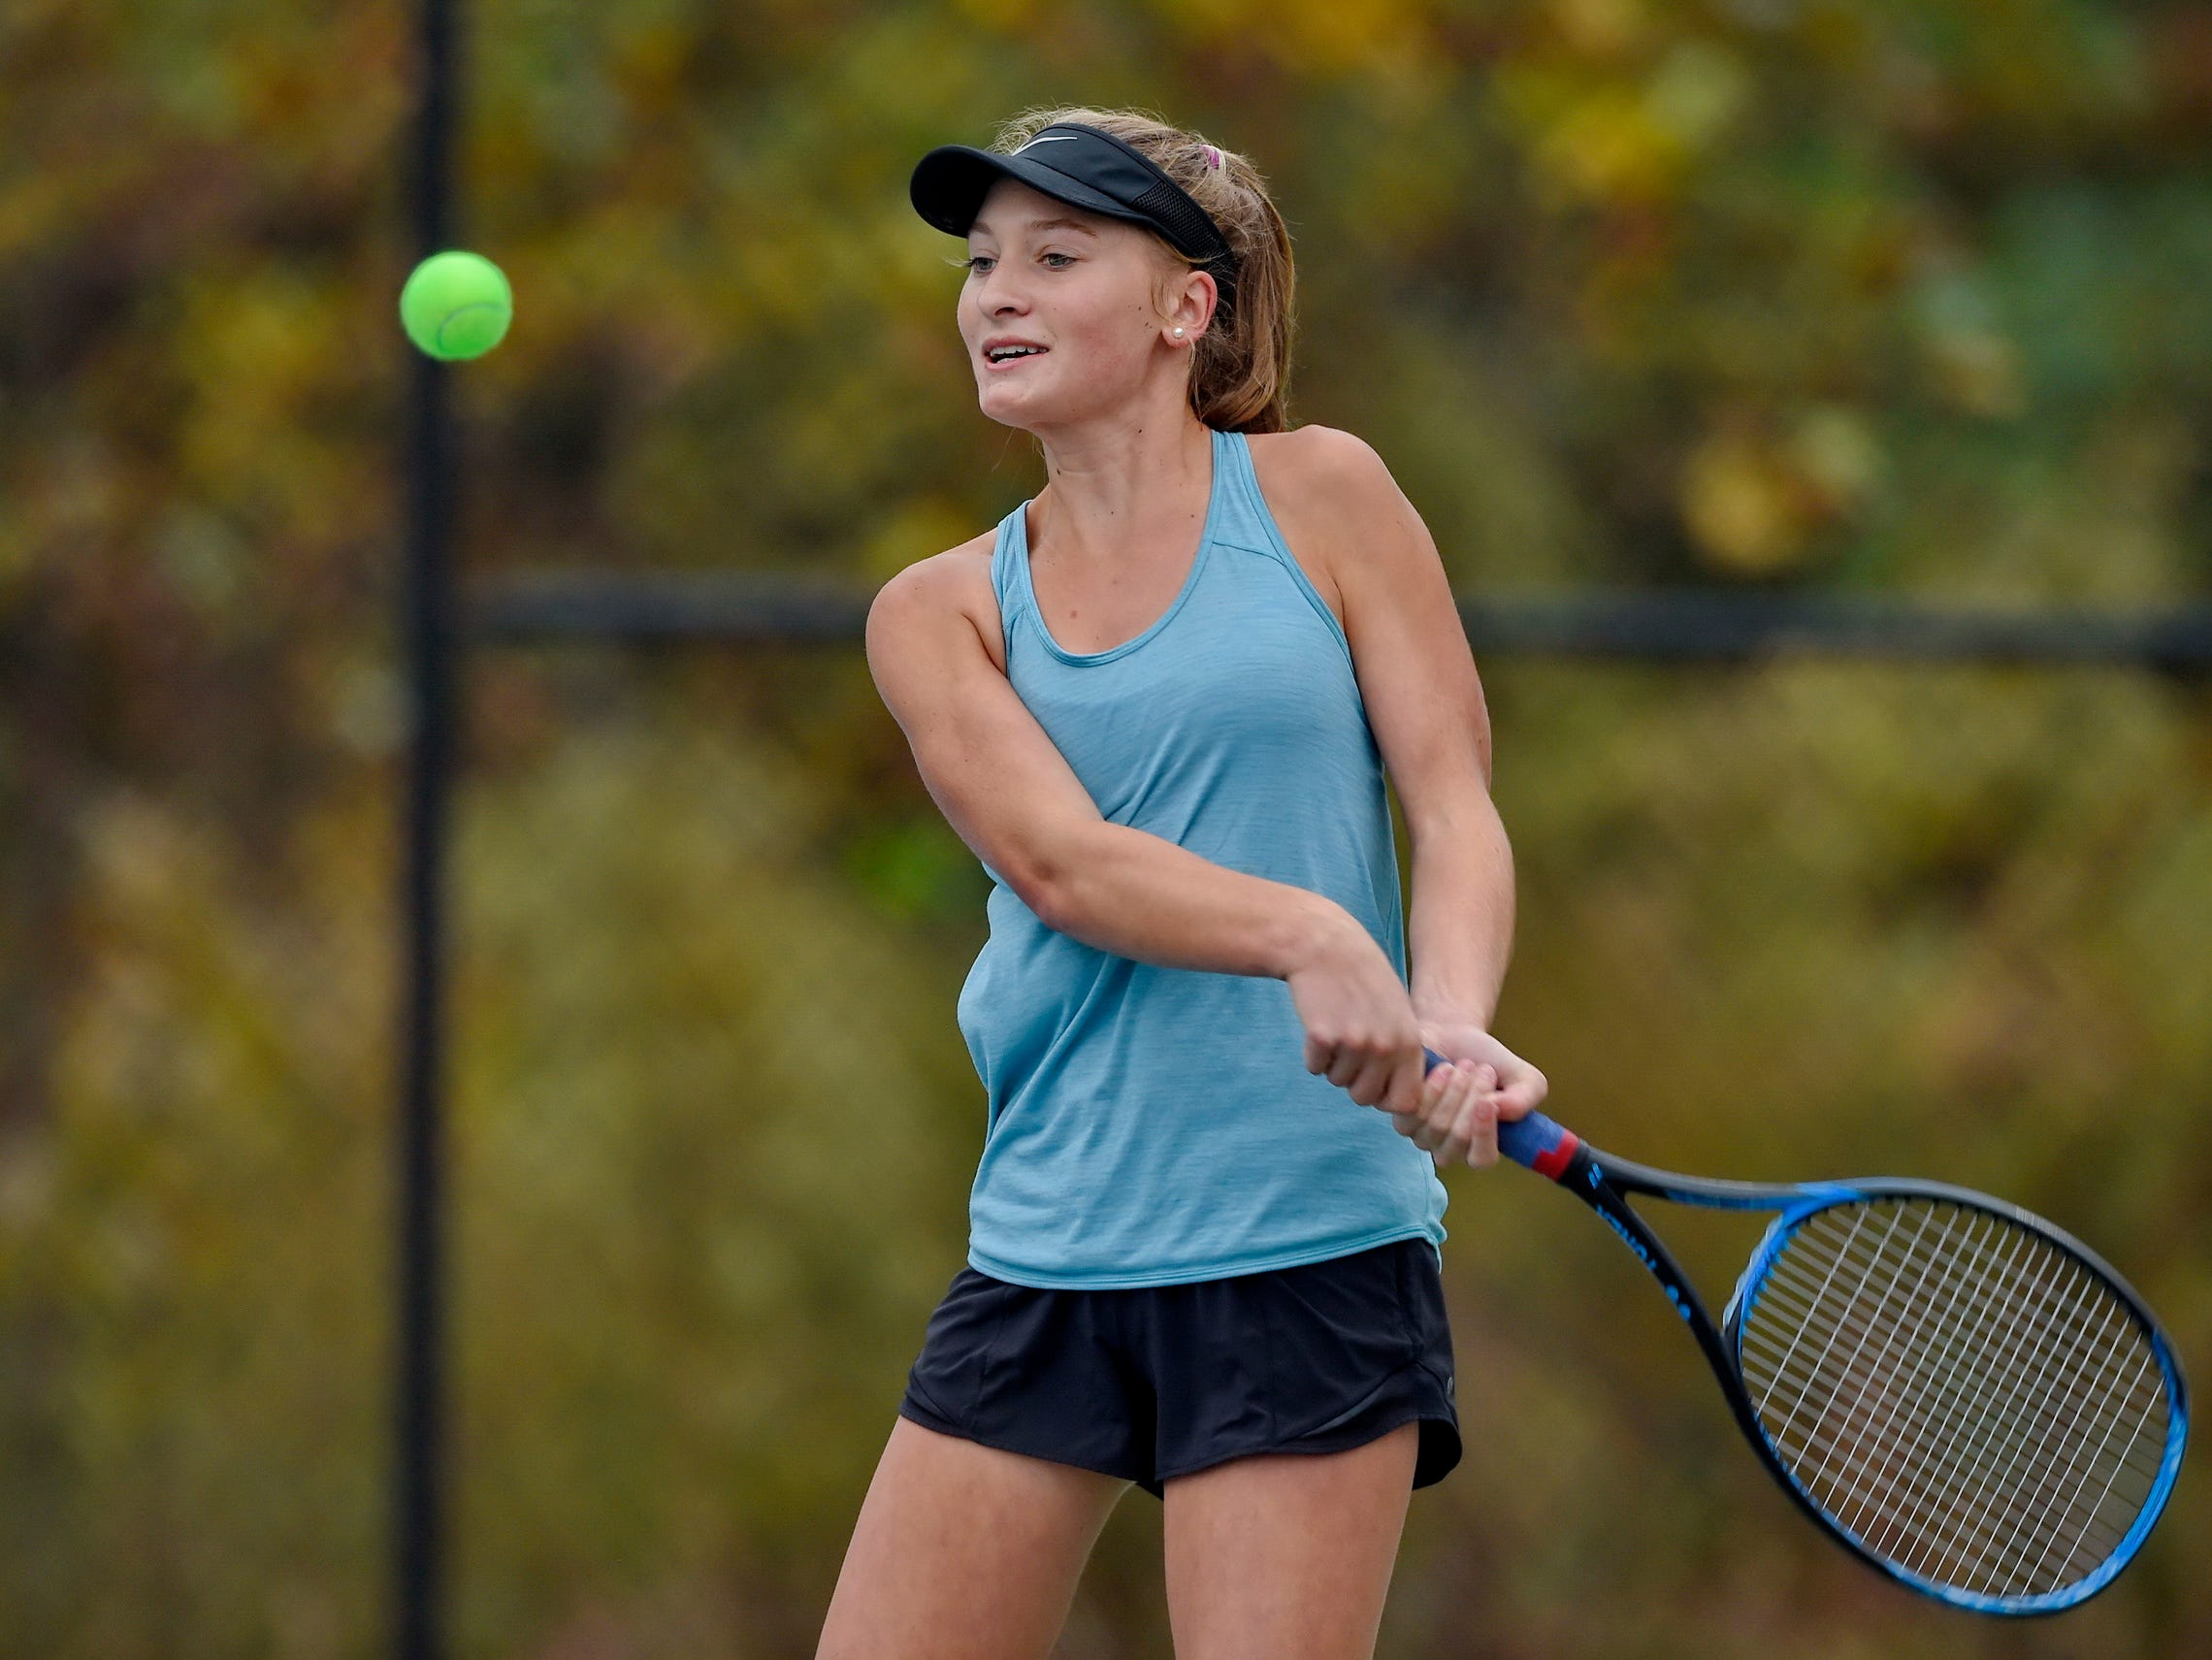 Christ Church's Annie Jennings plays against St. Joseph's in the Upper State girls tennis playoffs Monday, Nov. 5, 2018.